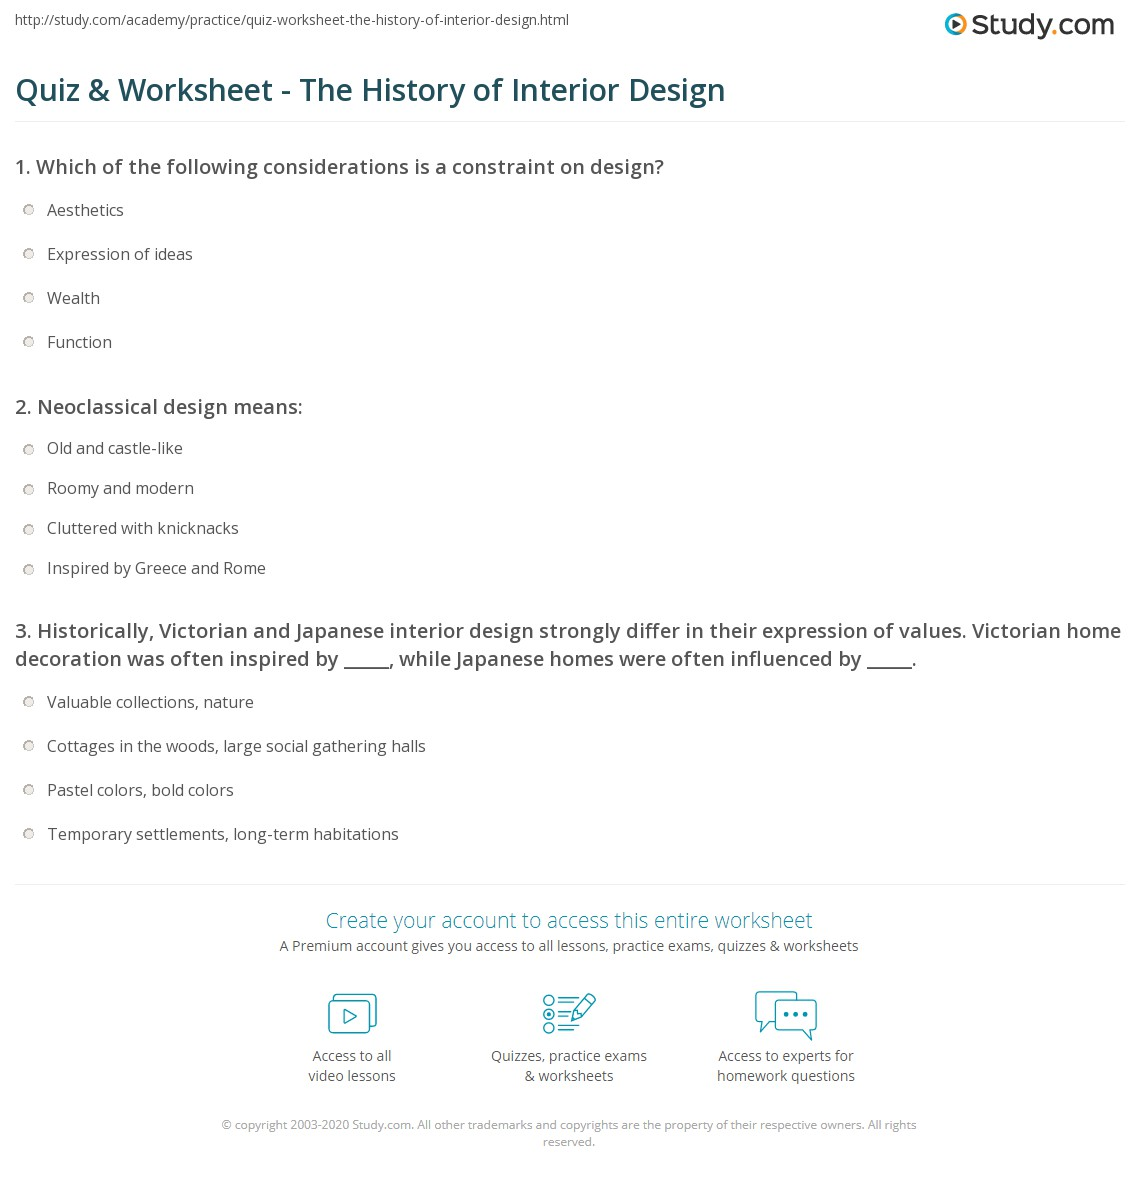 Print The History Of Interior Design Worksheet